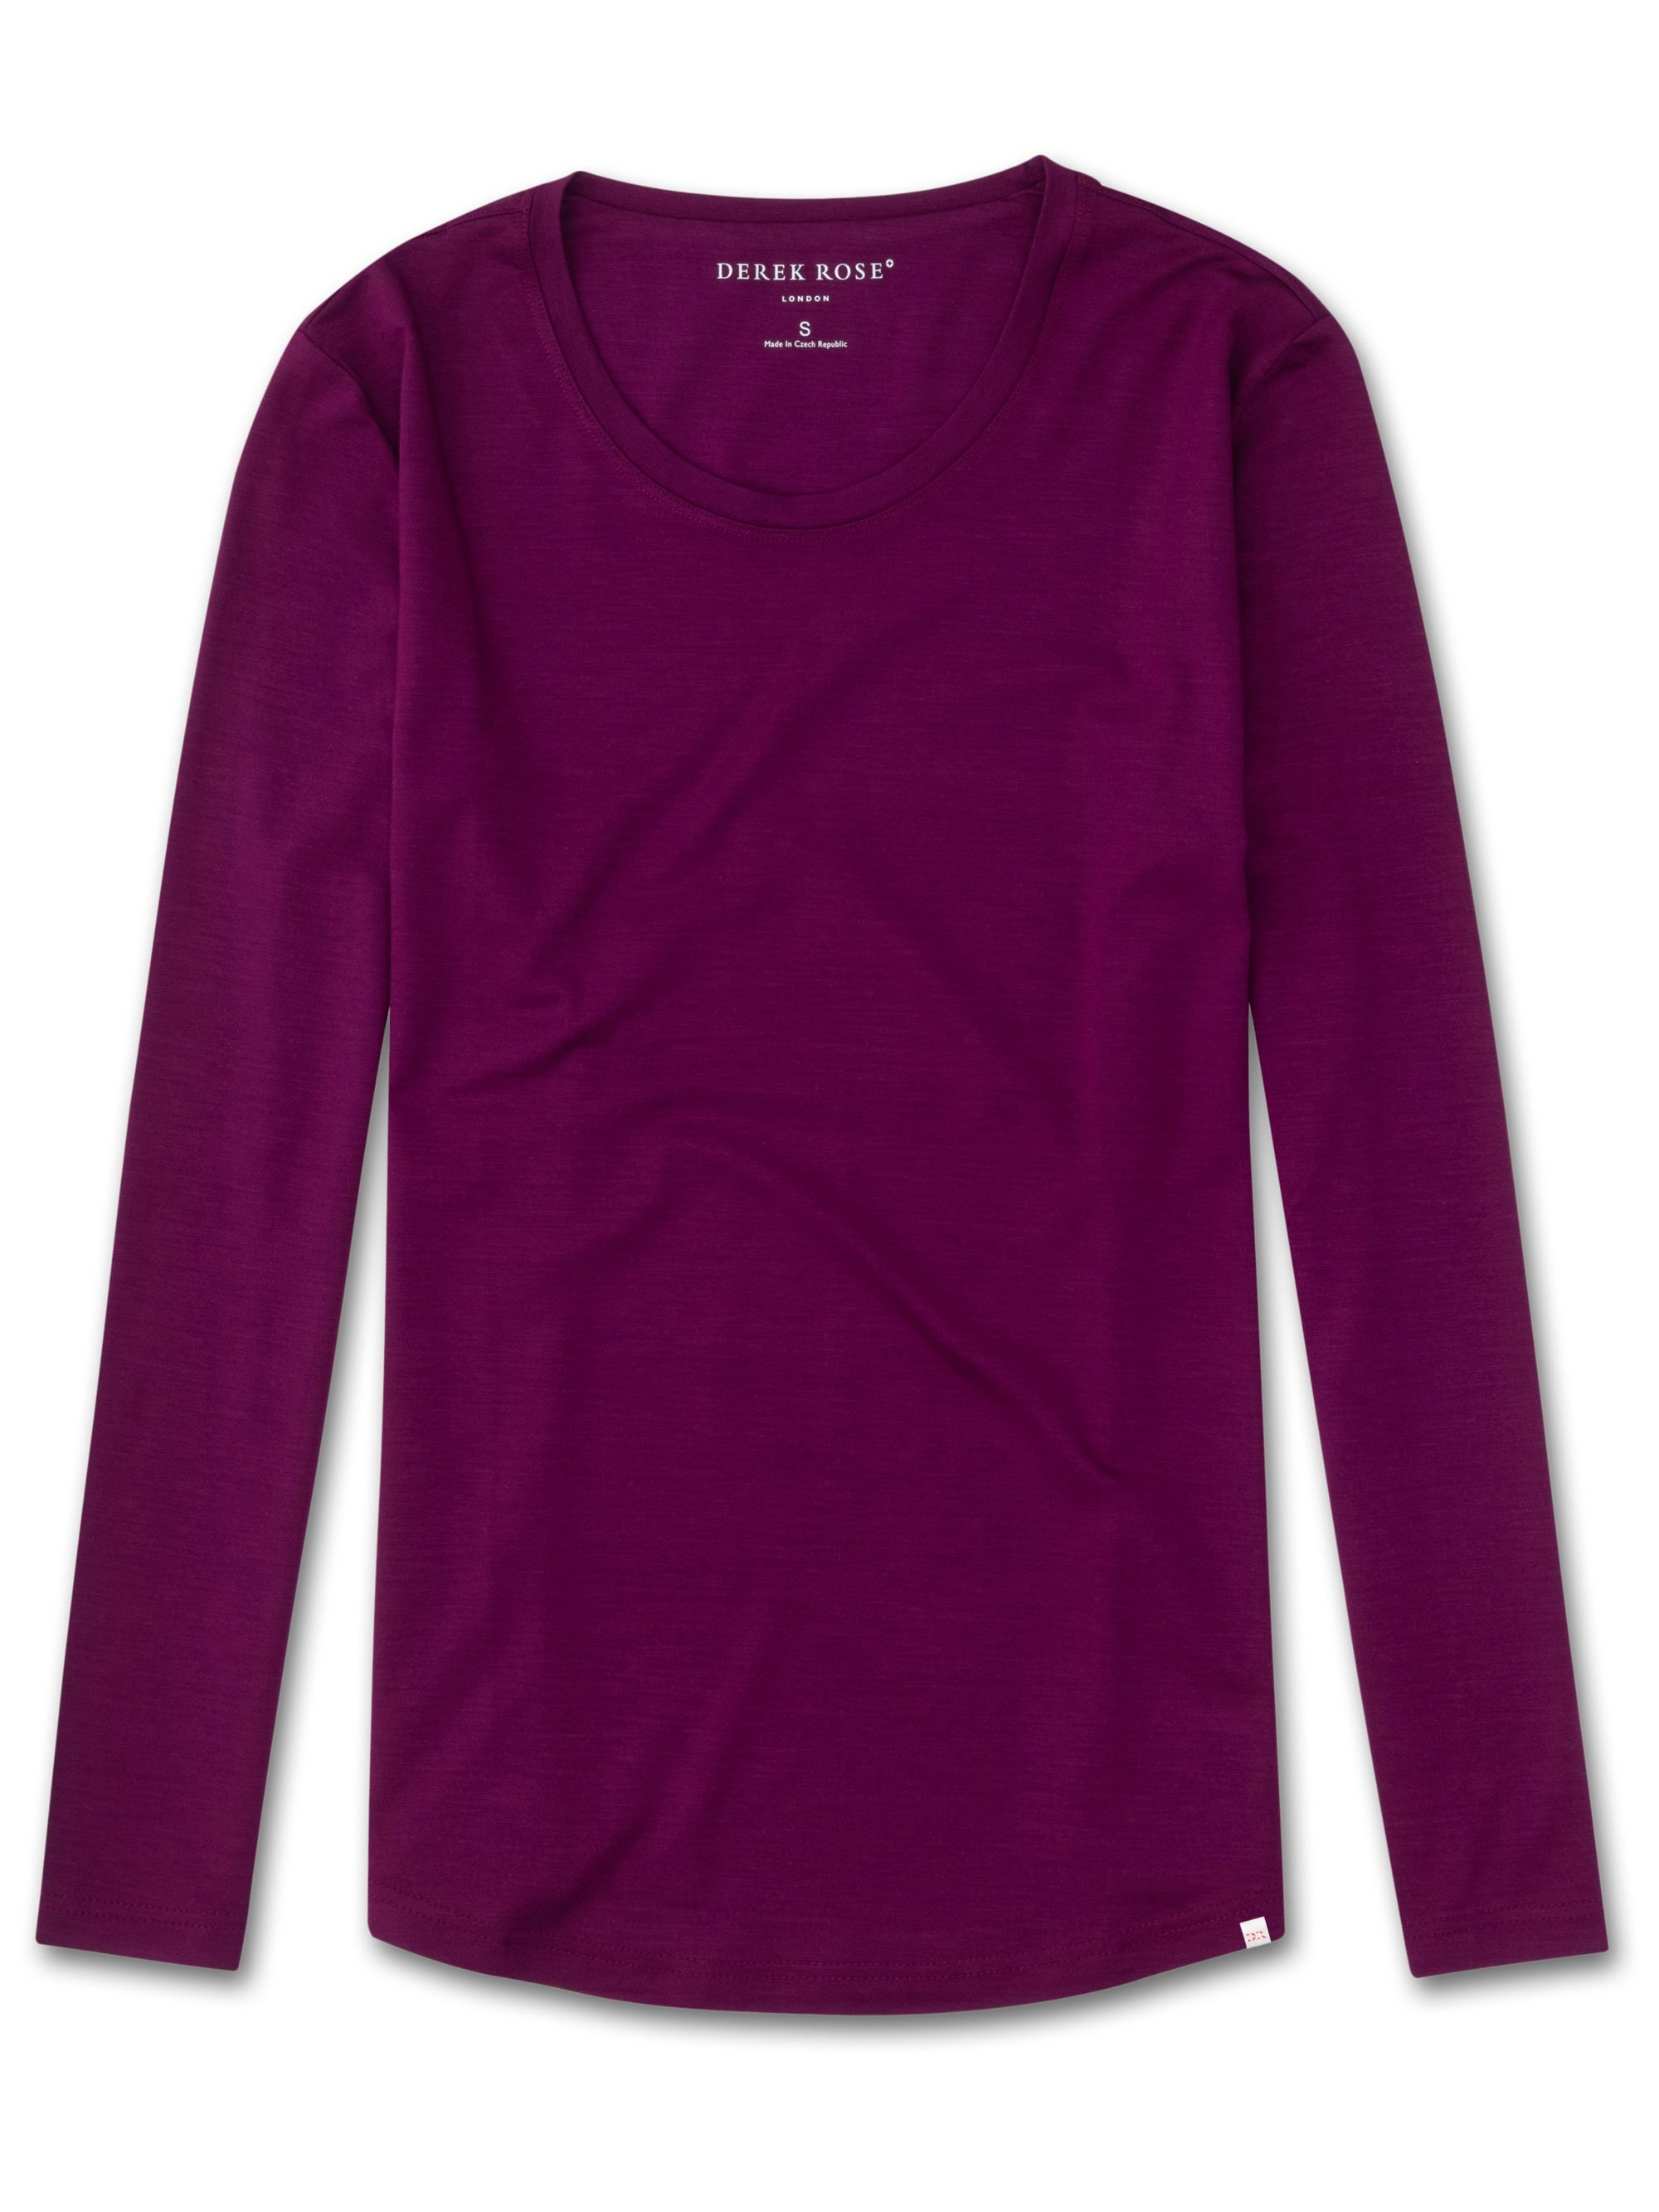 Women's Long Sleeve T-Shirt Lara Micro Modal Stretch Berry